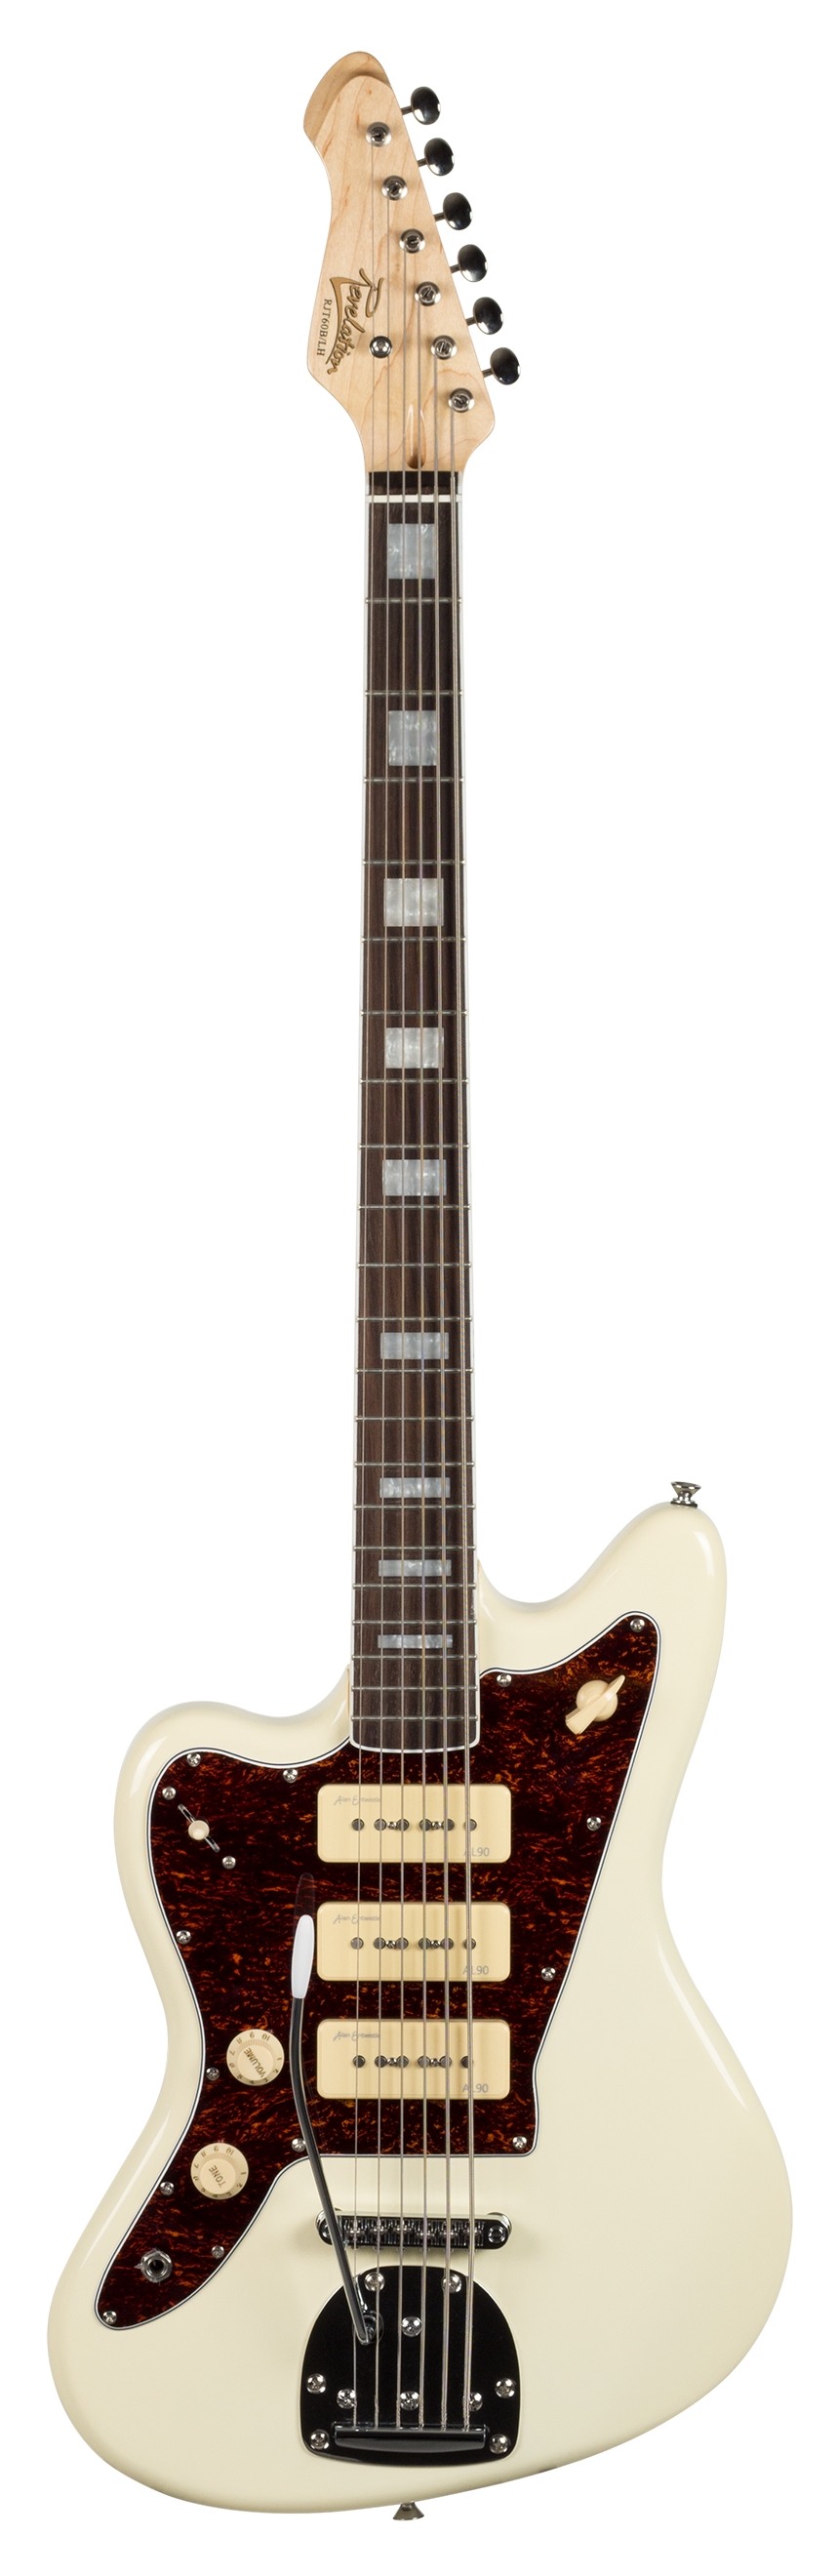 Revelation RJT-60 B vintage white left handed